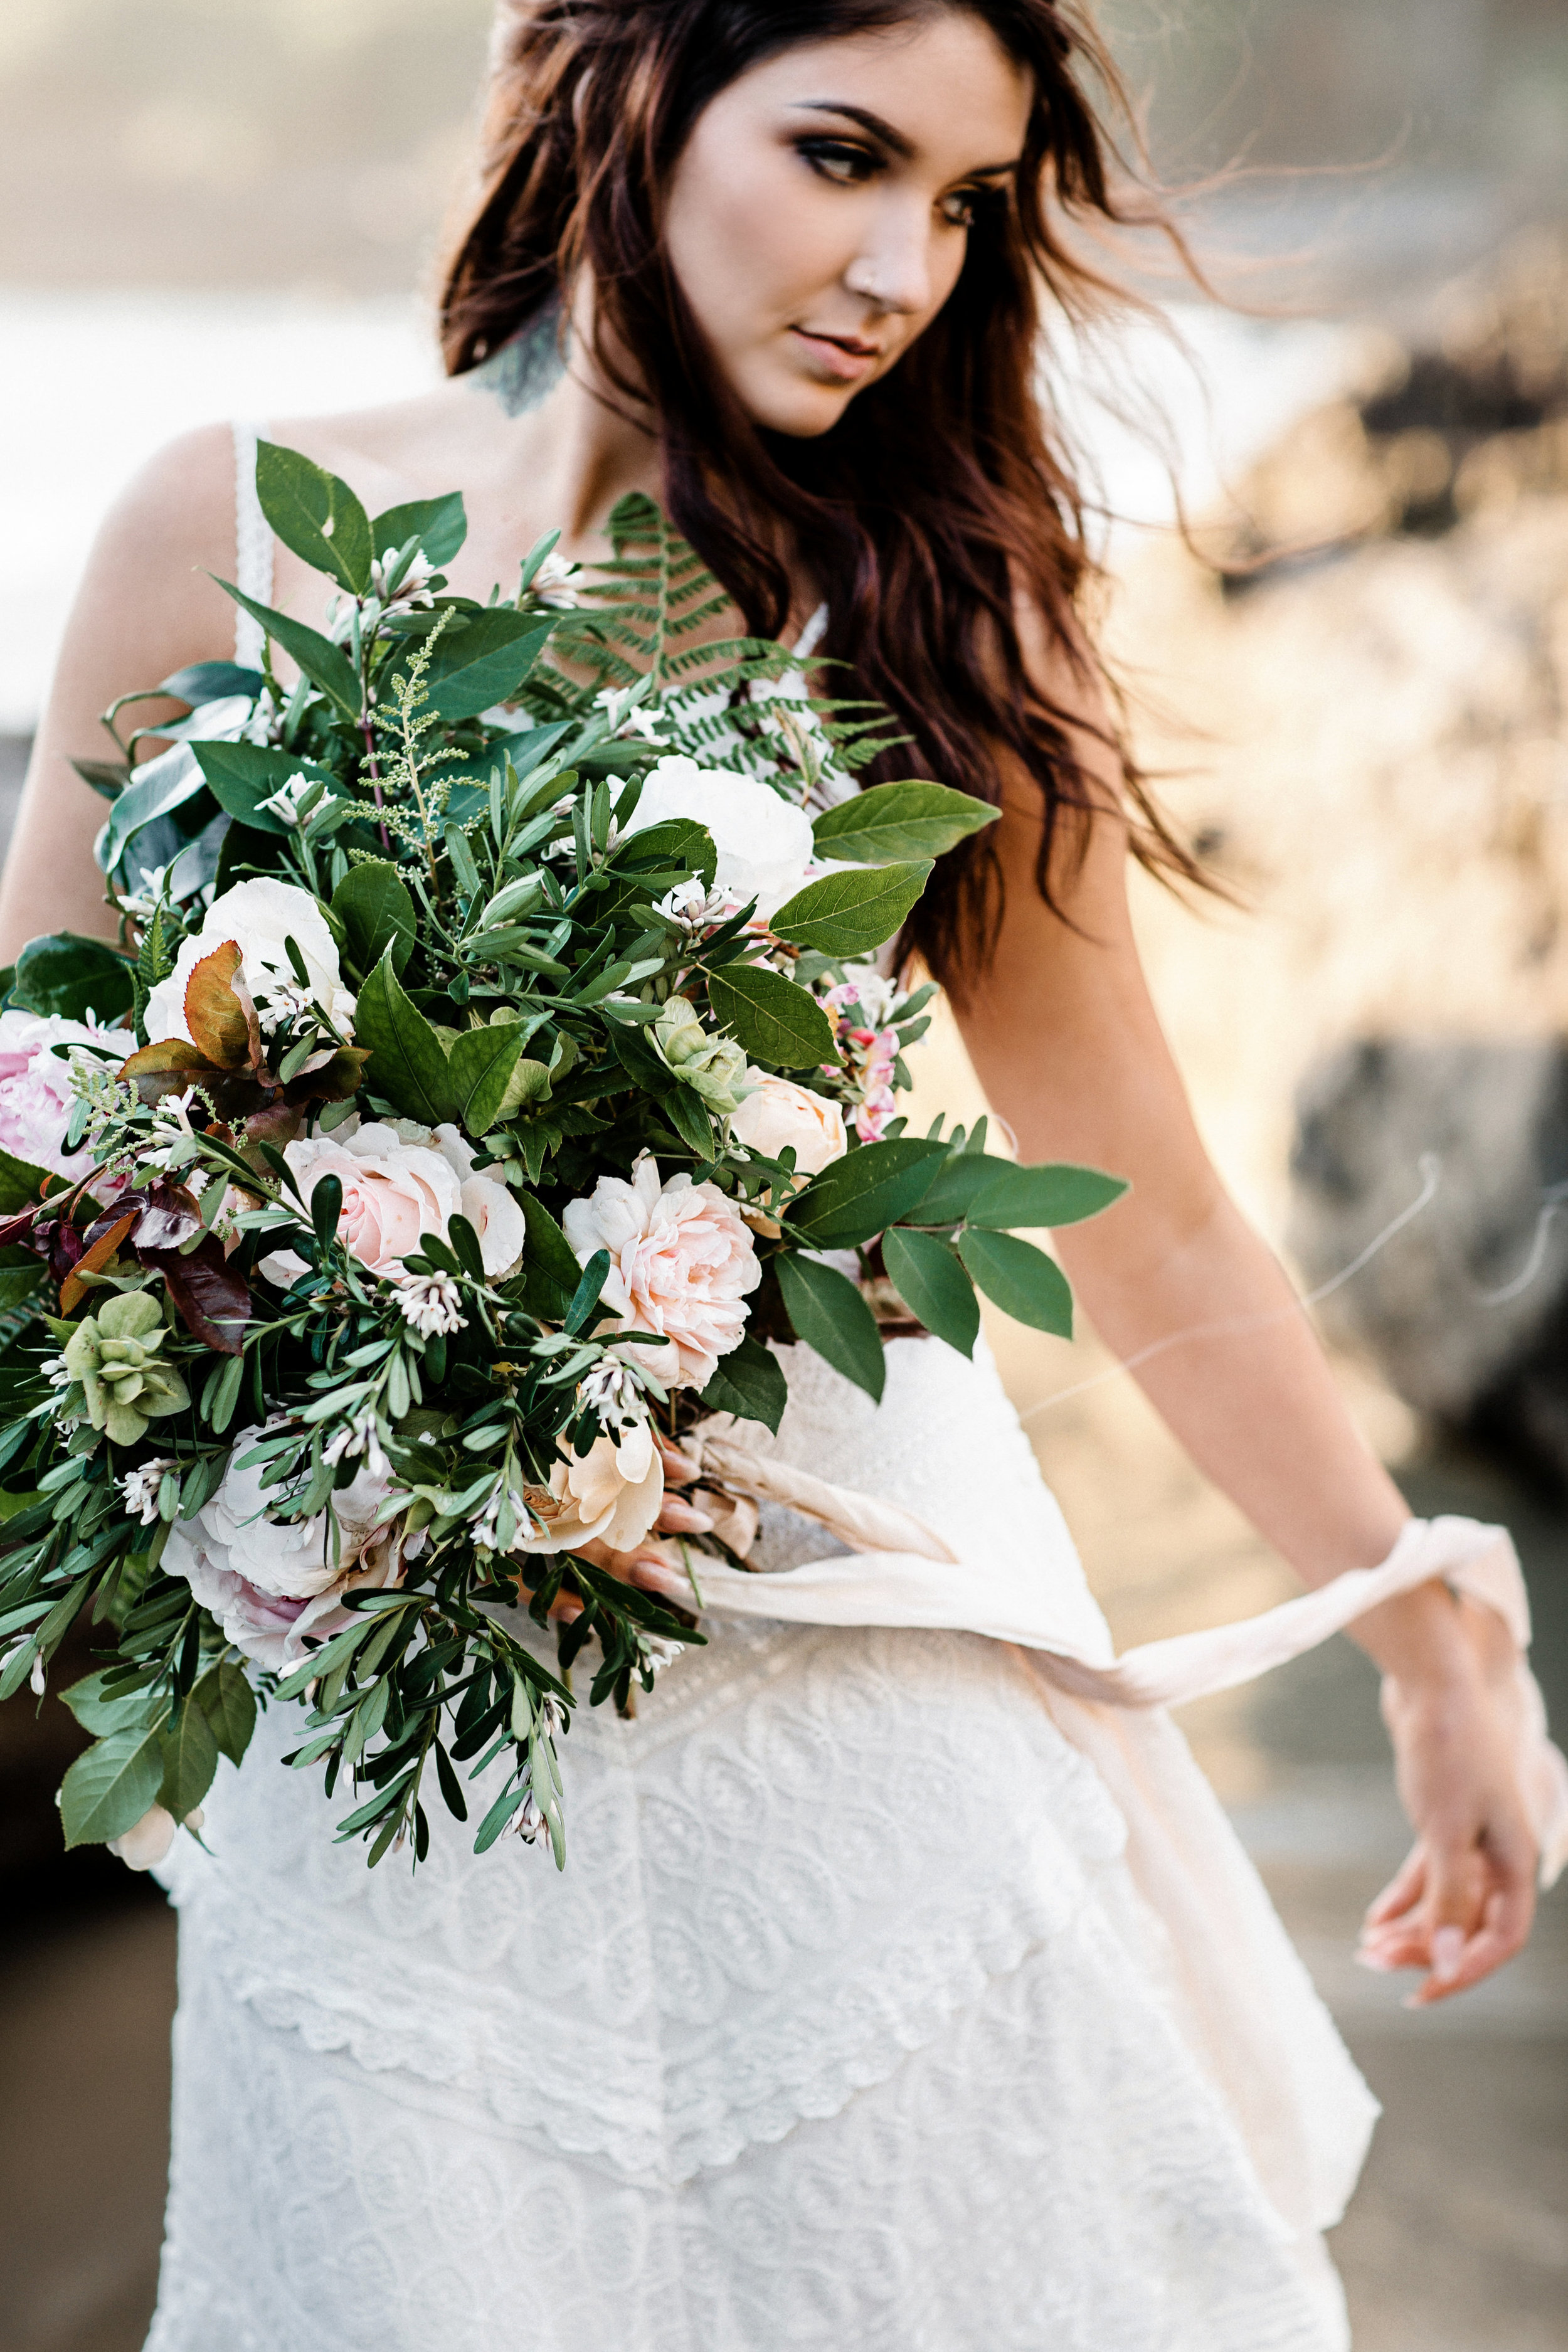 good seed floral design moody beach photoshoot with thick greenery and flowers